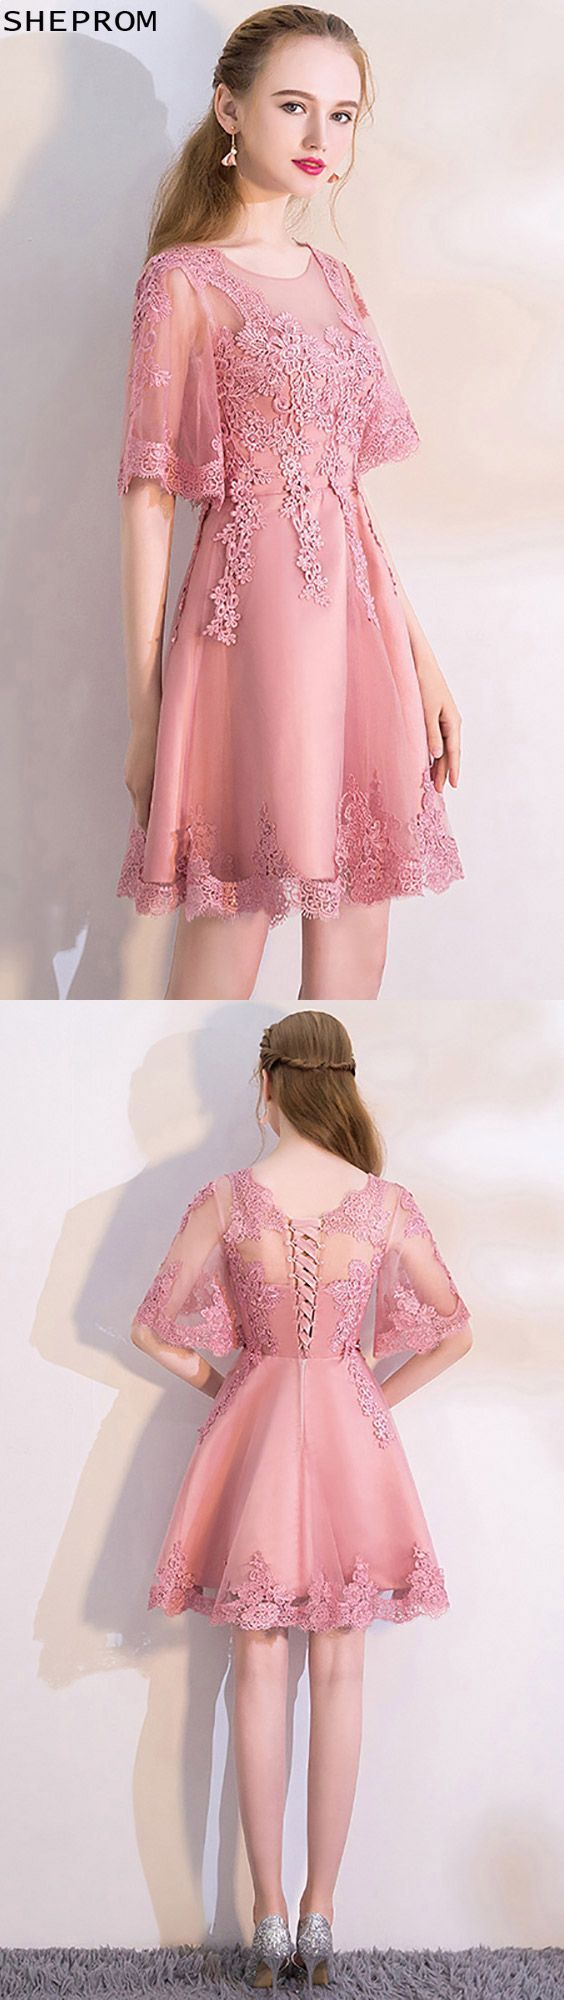 Pink Lace Short Homecoming Dress with Puffy Sleeves